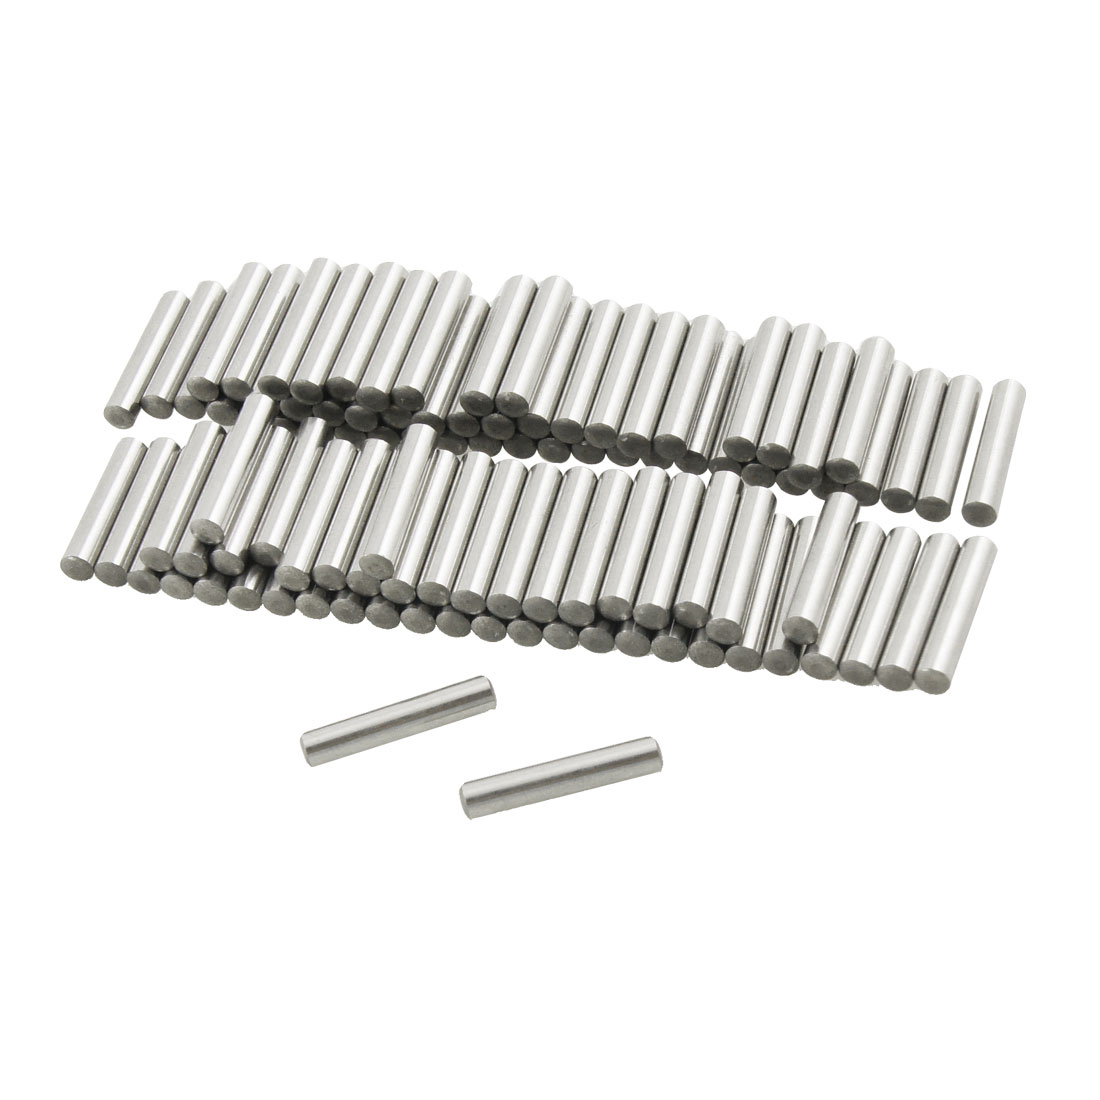 100 Pcs Stainless Steel 2.65mm x 15.8mm Dowel Pins Fasten Elements